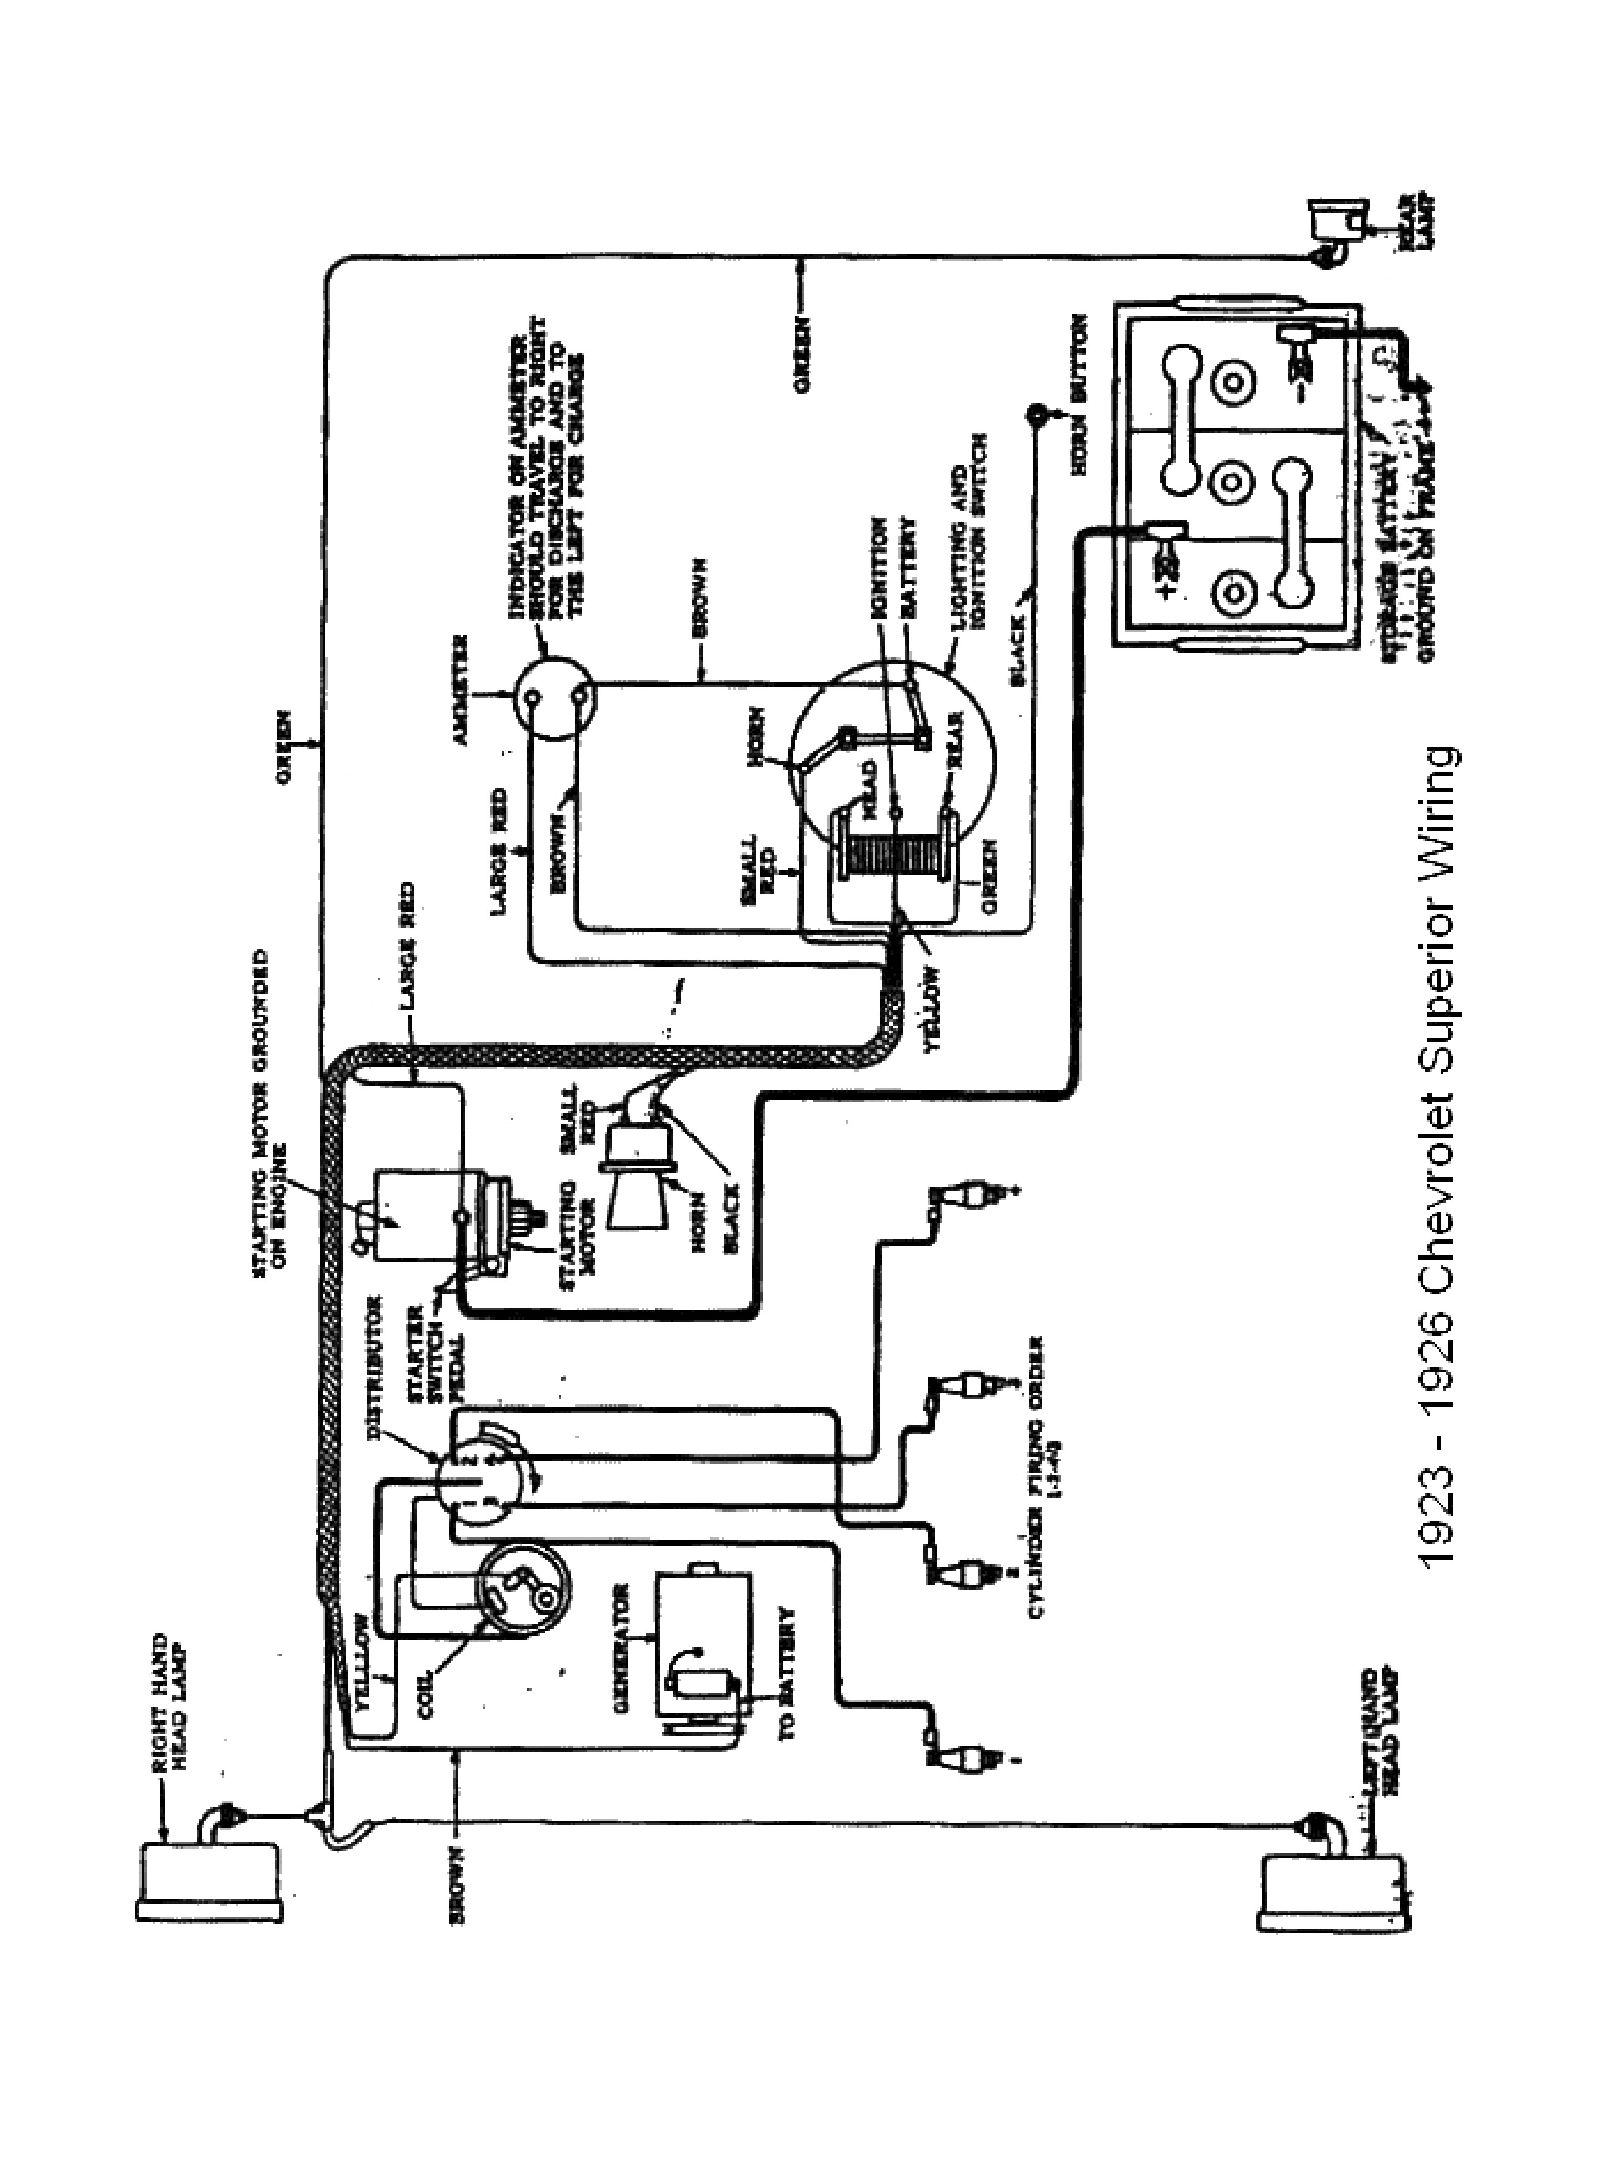 chevy wiring diagrams 1937 Chevy Suburban 1923 superior model 1923 superior model